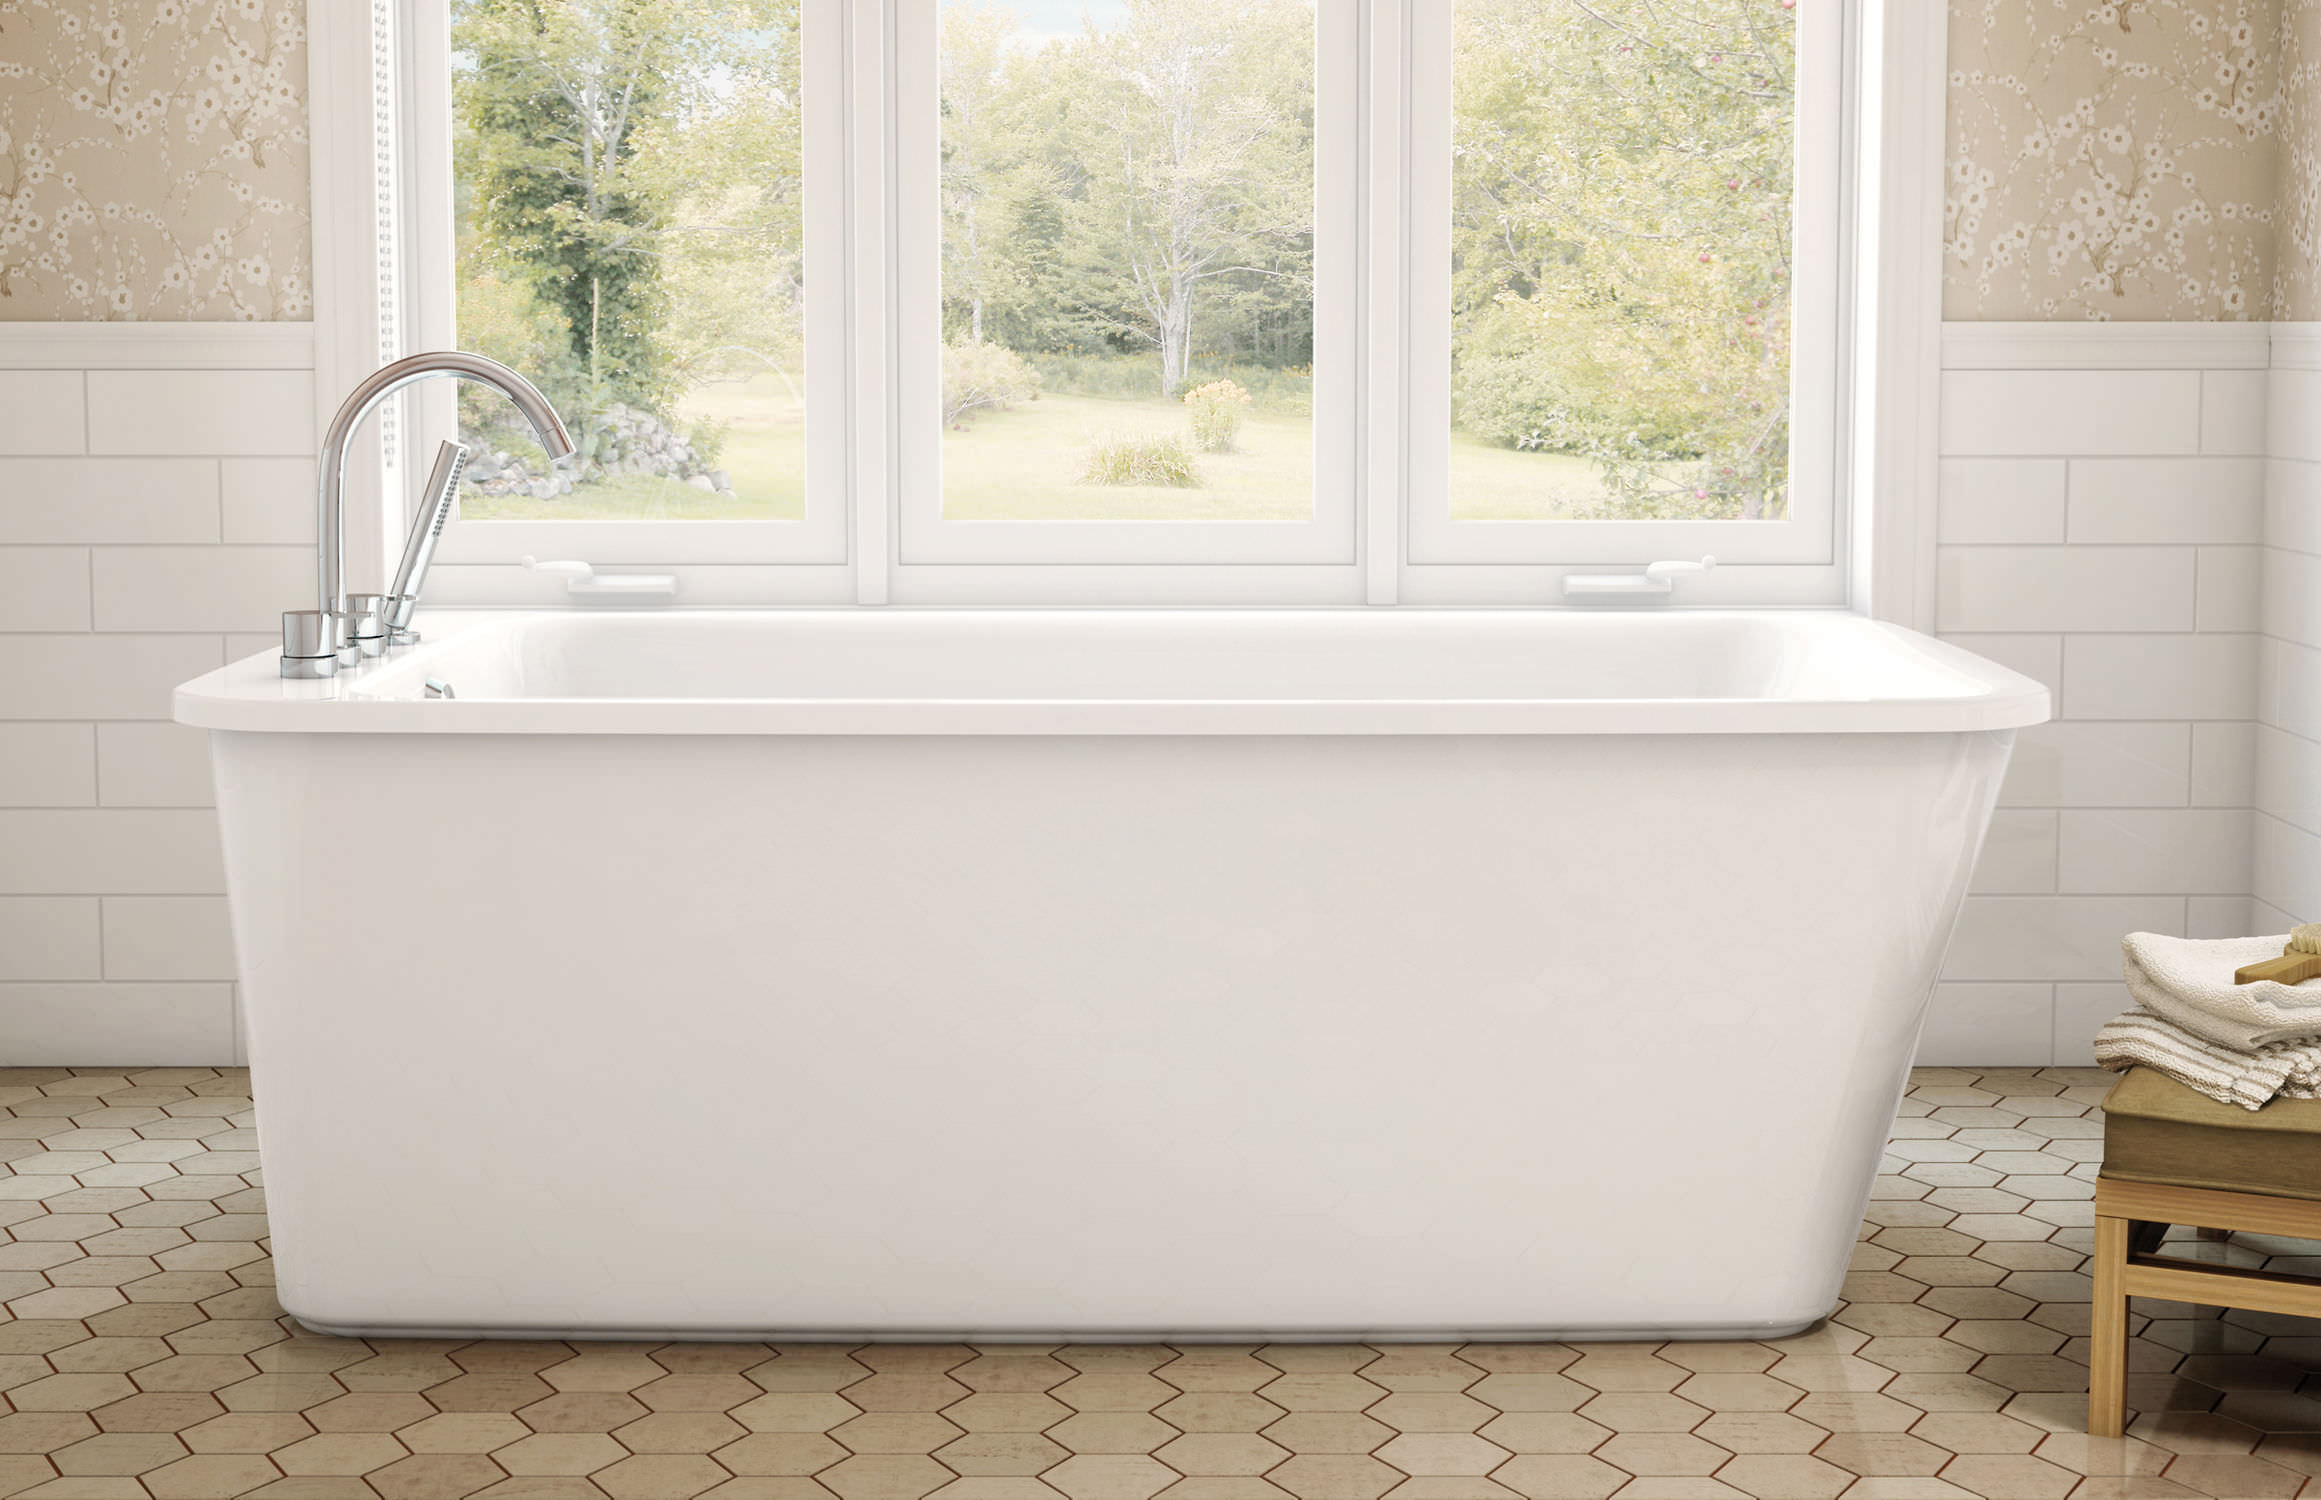 Freestanding Bathtub / Acrylic · Freestanding Bathtub / Acrylic ...